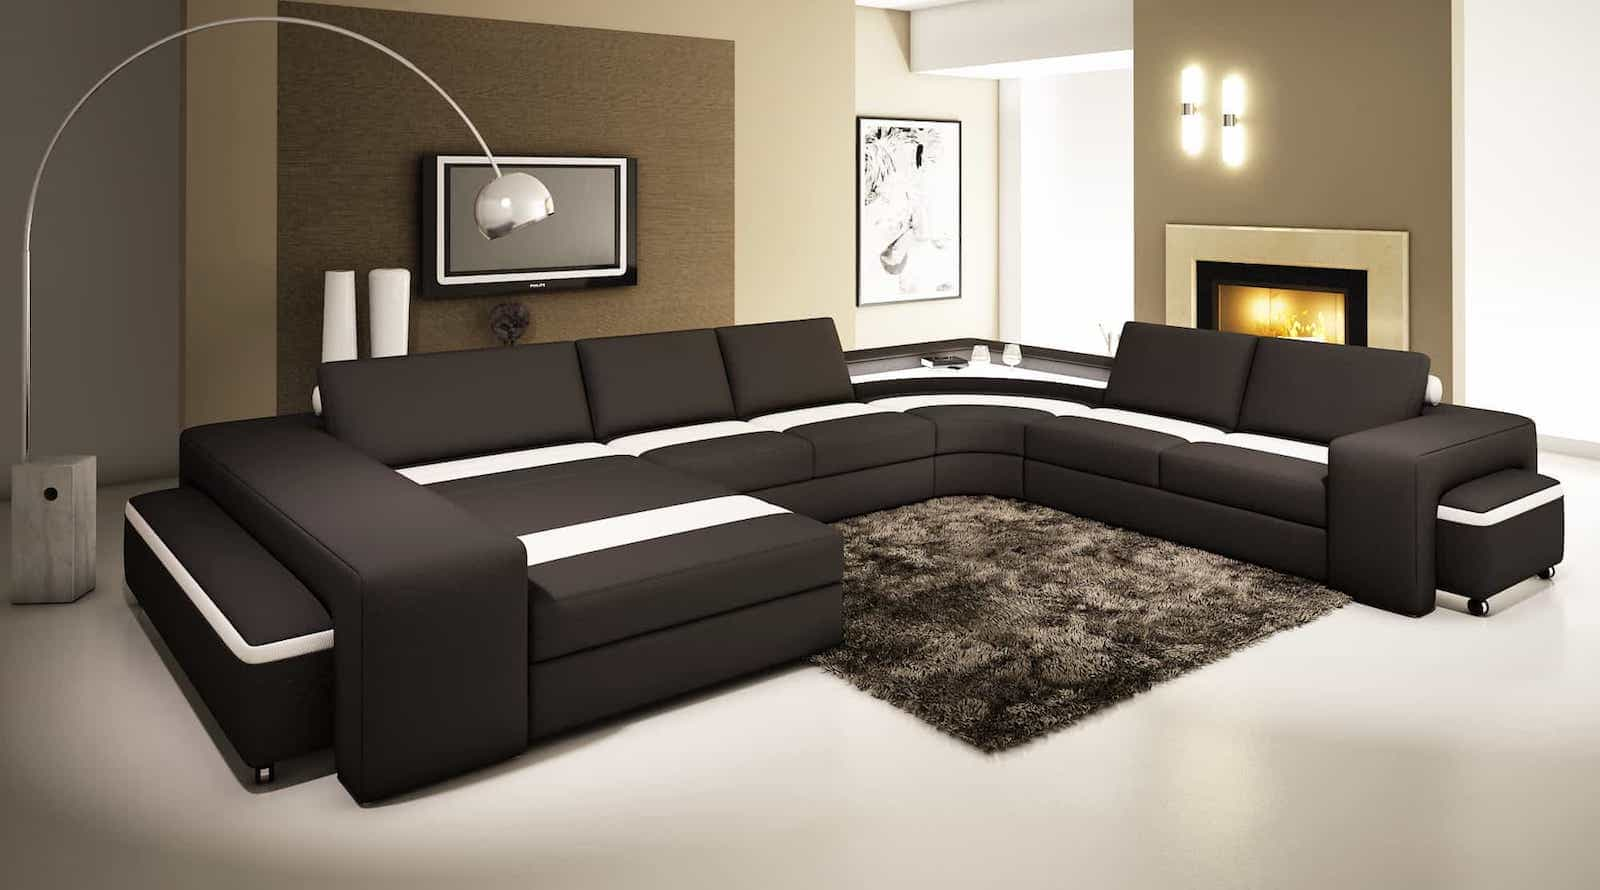 Modern Living Room Design With Elegant Black U Shaped Couch And Flokati Rugs (Image 9 of 10)